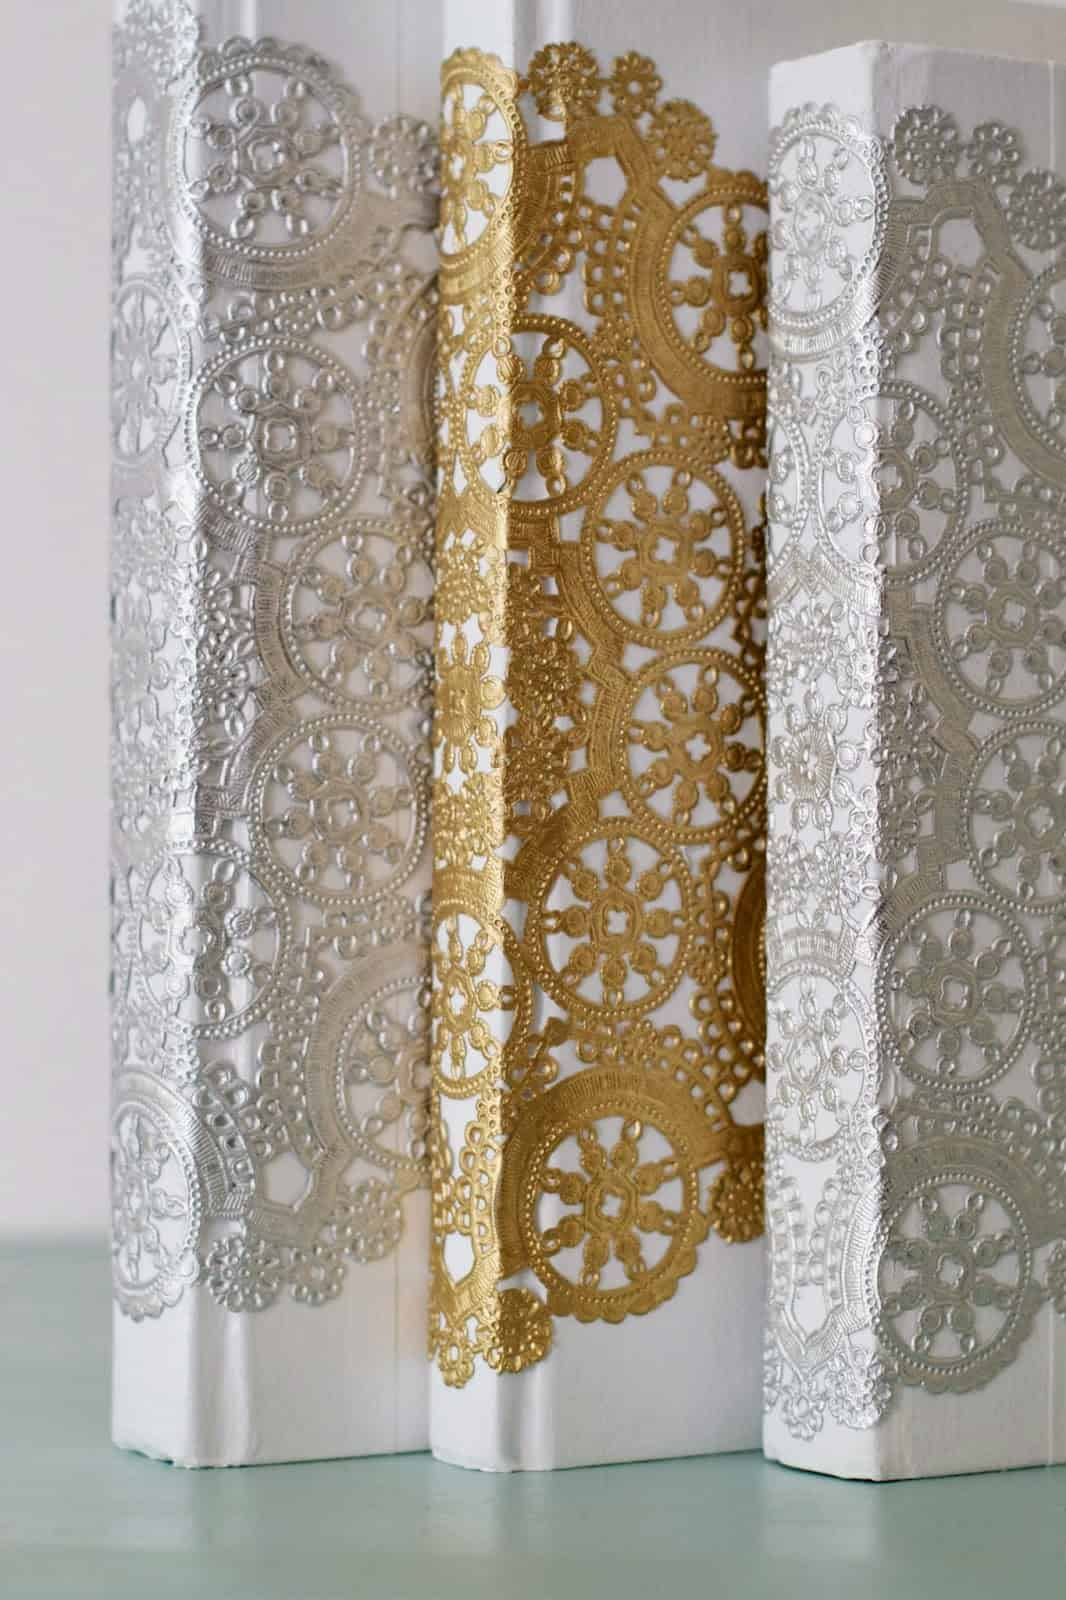 Silver and gold paper lace books